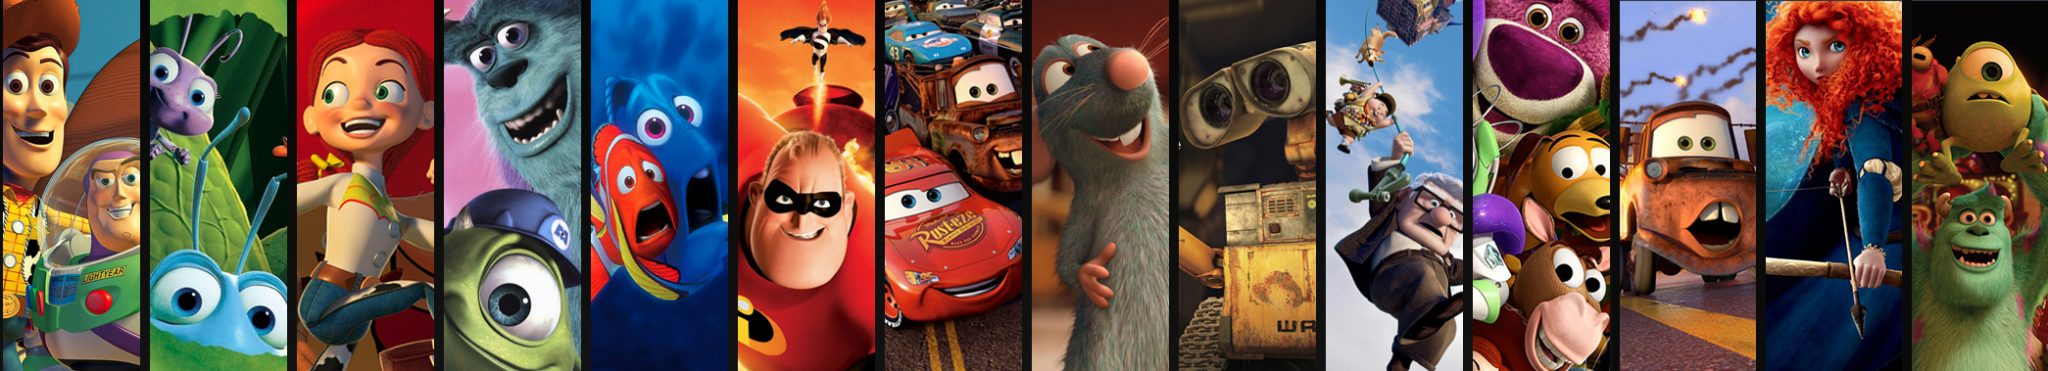 Ranking the Pixar Movies By Box Office Success